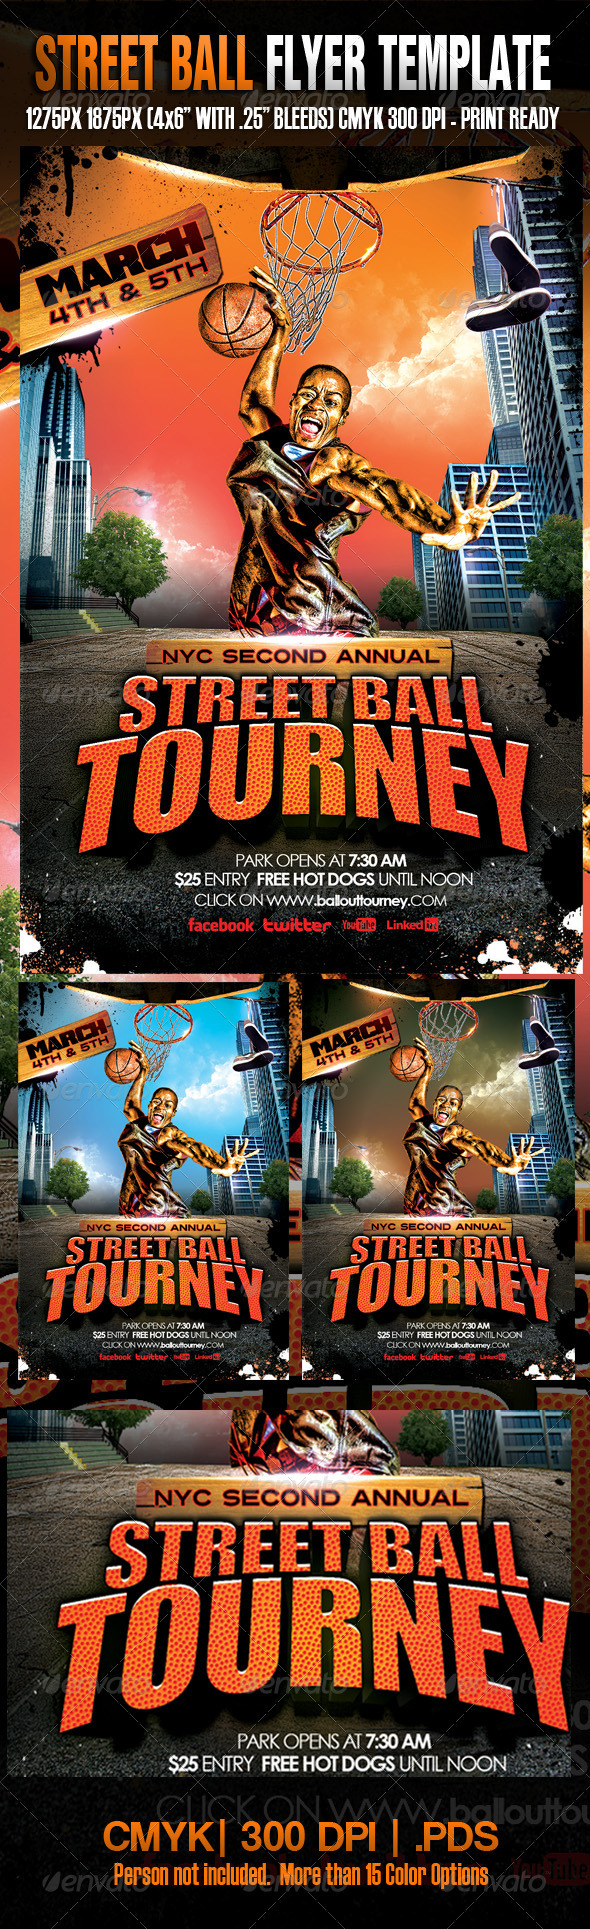 Street Ball Tourney Template